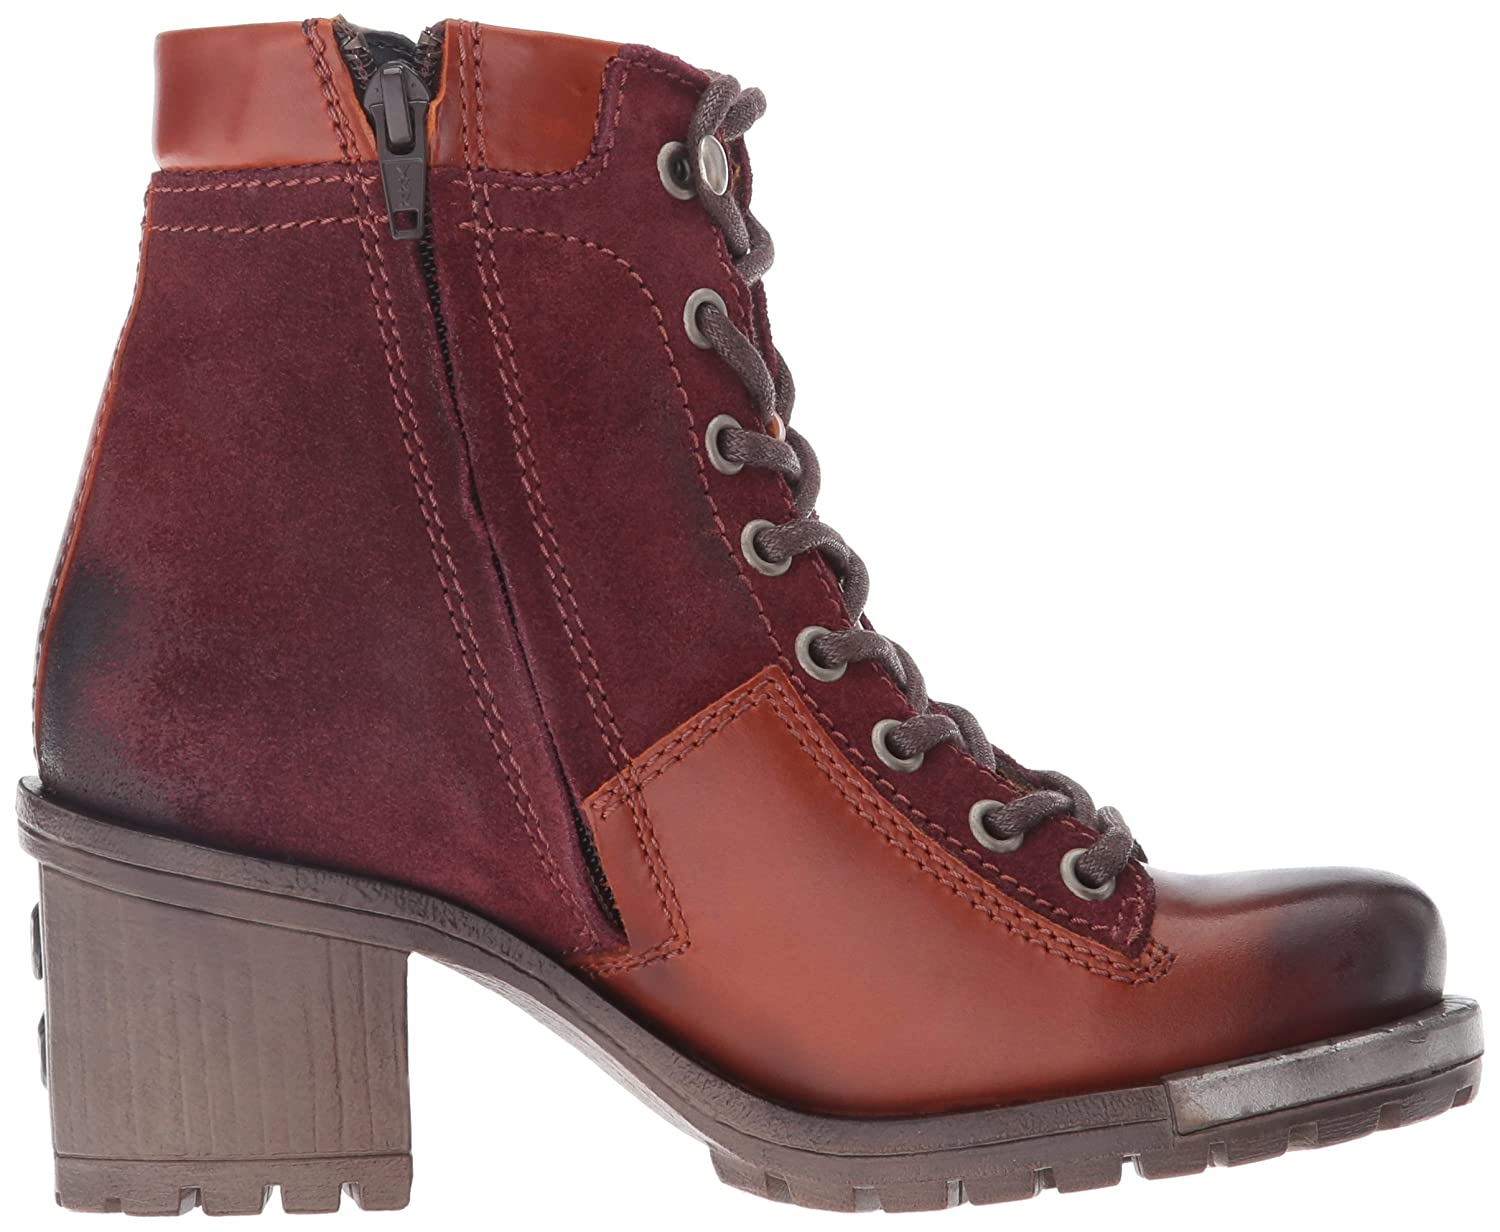 Fly London Women's Leal689fly Combat Boot B01DBXFNCW 6.5-7 37 M EU / 6.5-7 B01DBXFNCW B(M) US|Brick/Wine Oil Suede/Rug cfd77a